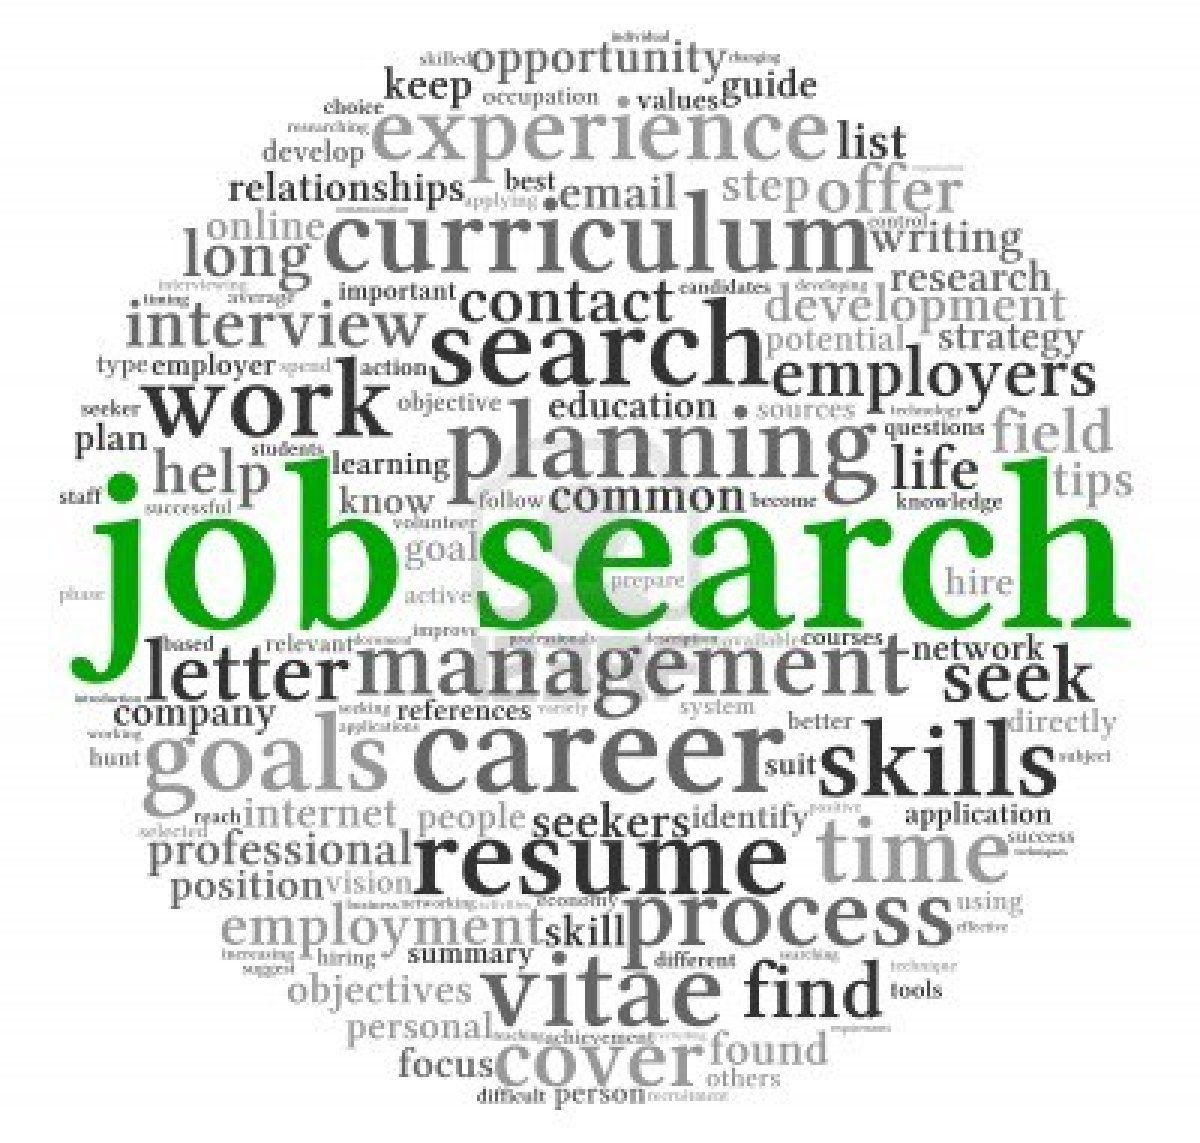 indeed uk resume search resume maker create professional indeed uk resume search lance photographer jobs home uk job sites best job searching site job